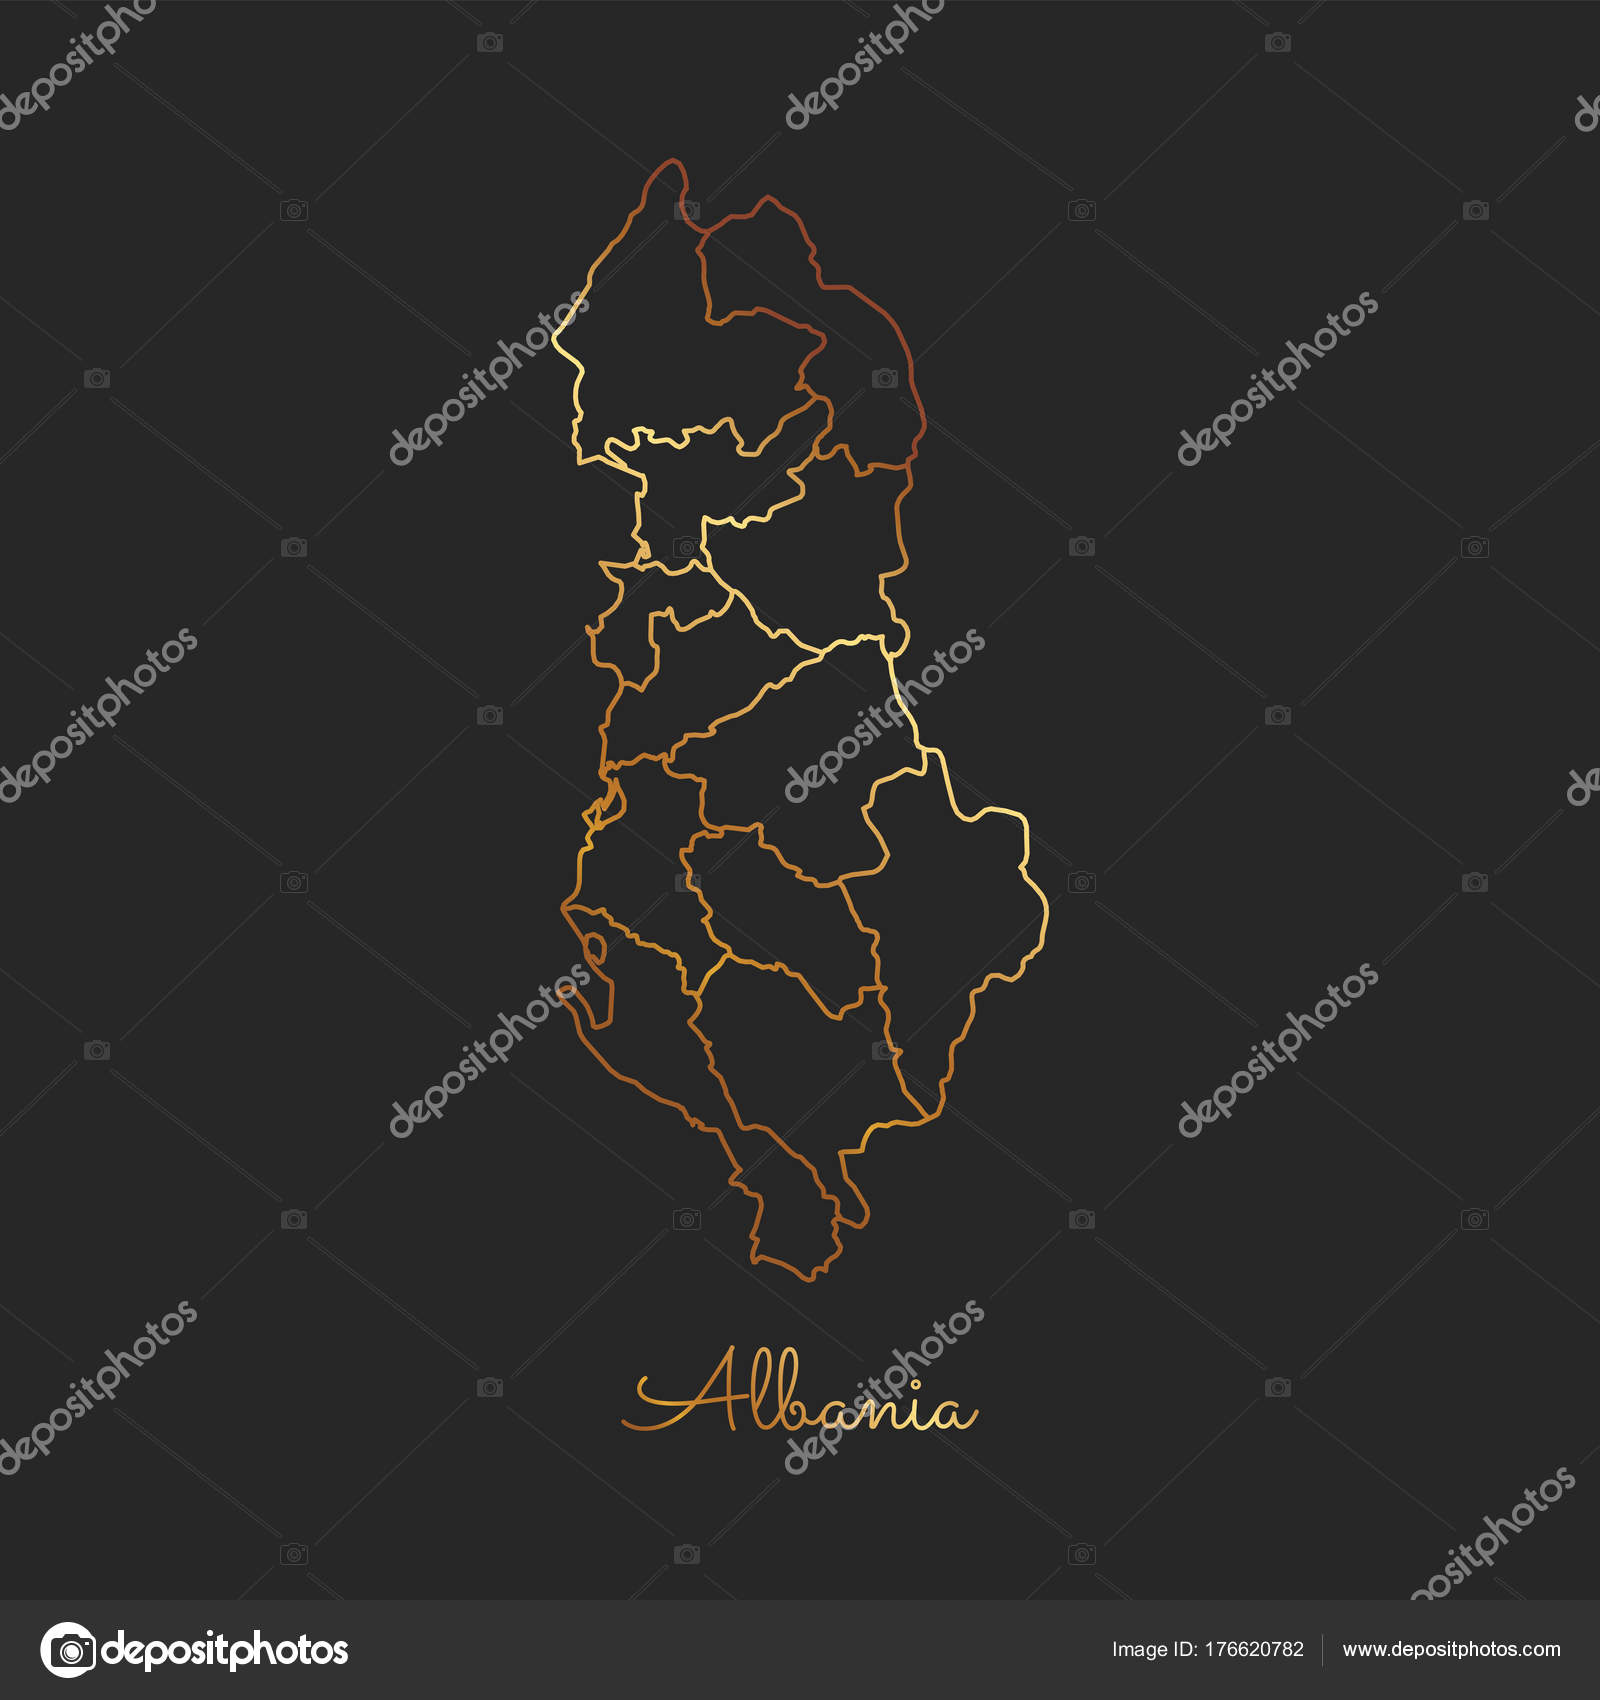 Albania region map golden gradient outline on dark background albania region map golden gradient outline on dark background detailed map of albania regions stock publicscrutiny Choice Image